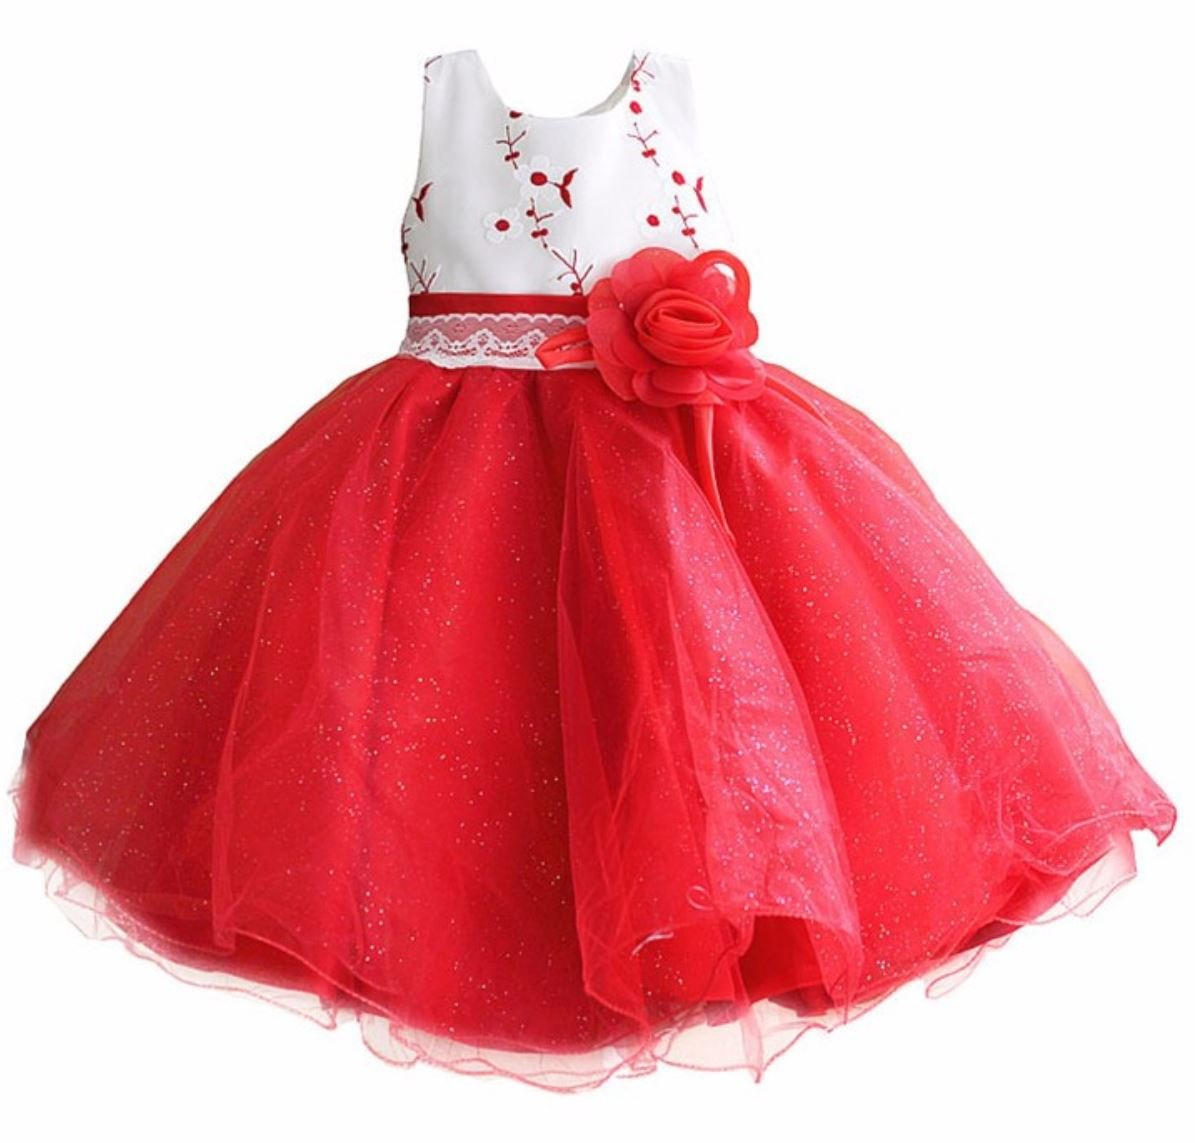 3T Toddler Girls Dress FREE SHIPPING Formal Red Dress Perfect Red Tutu Dress for Pageant Show